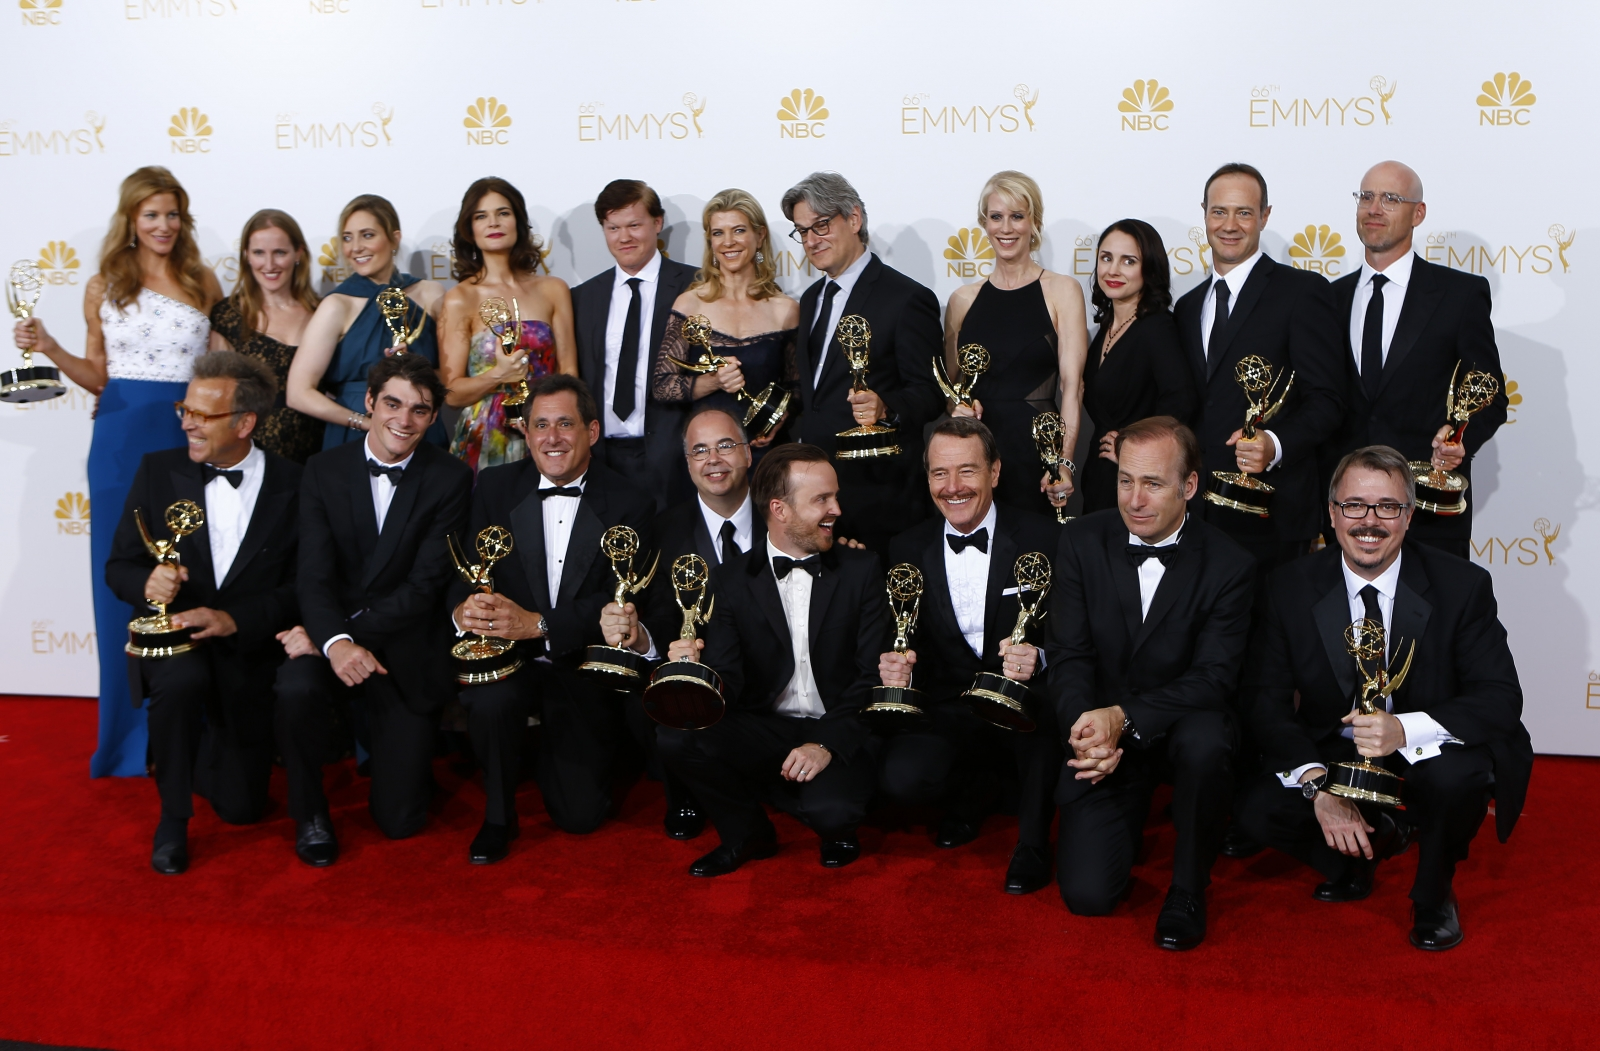 Emmy Awards 2014 Winners List: Breaking Bad and Modern Family Wins Big at the Award Show